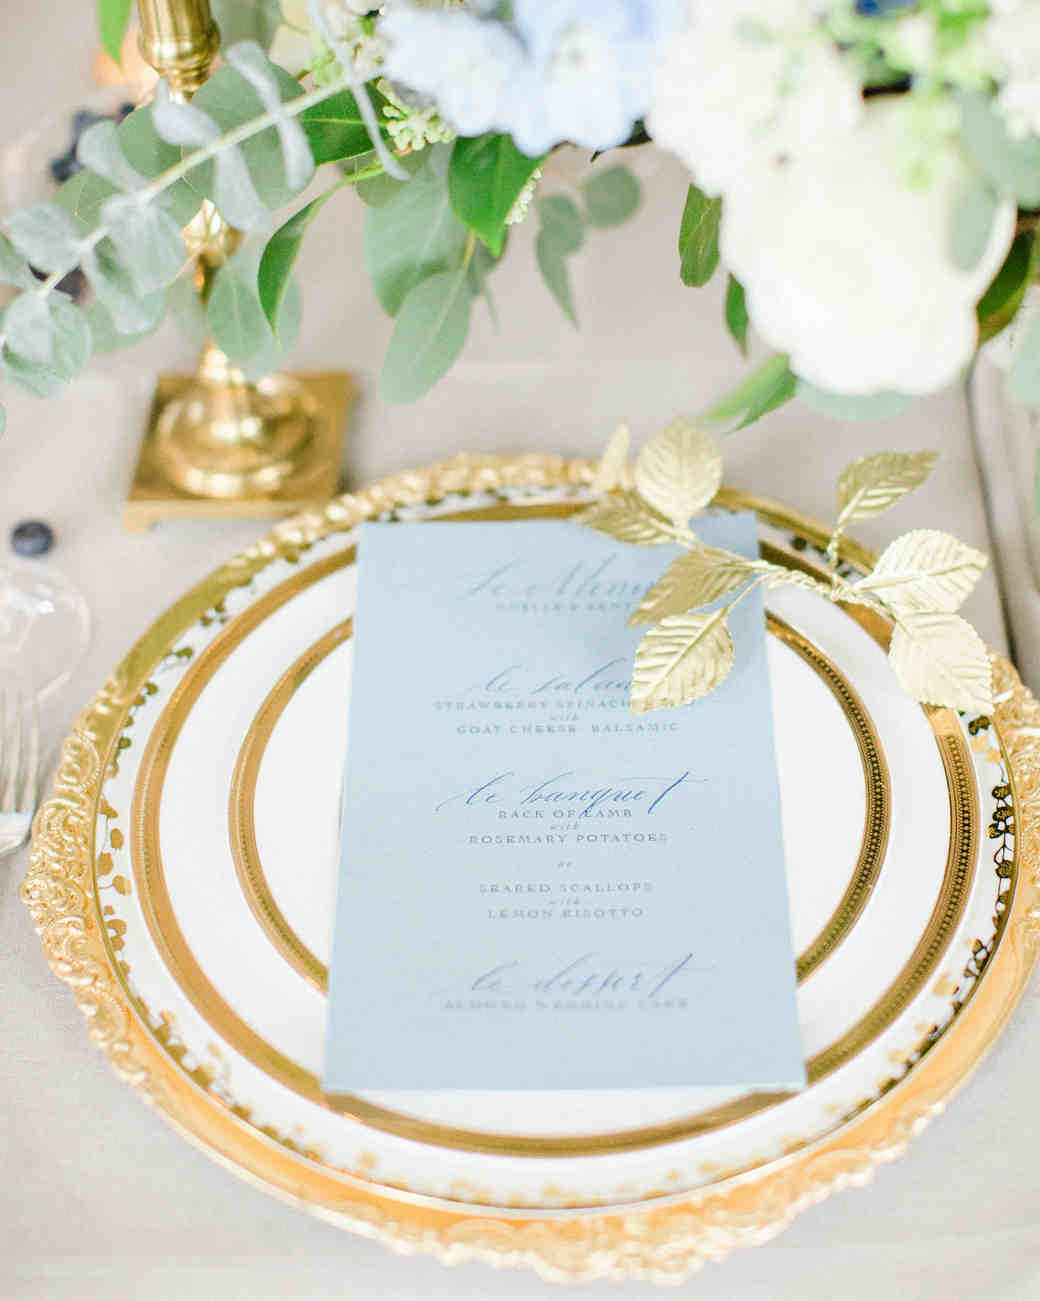 gold-trimmed place setting